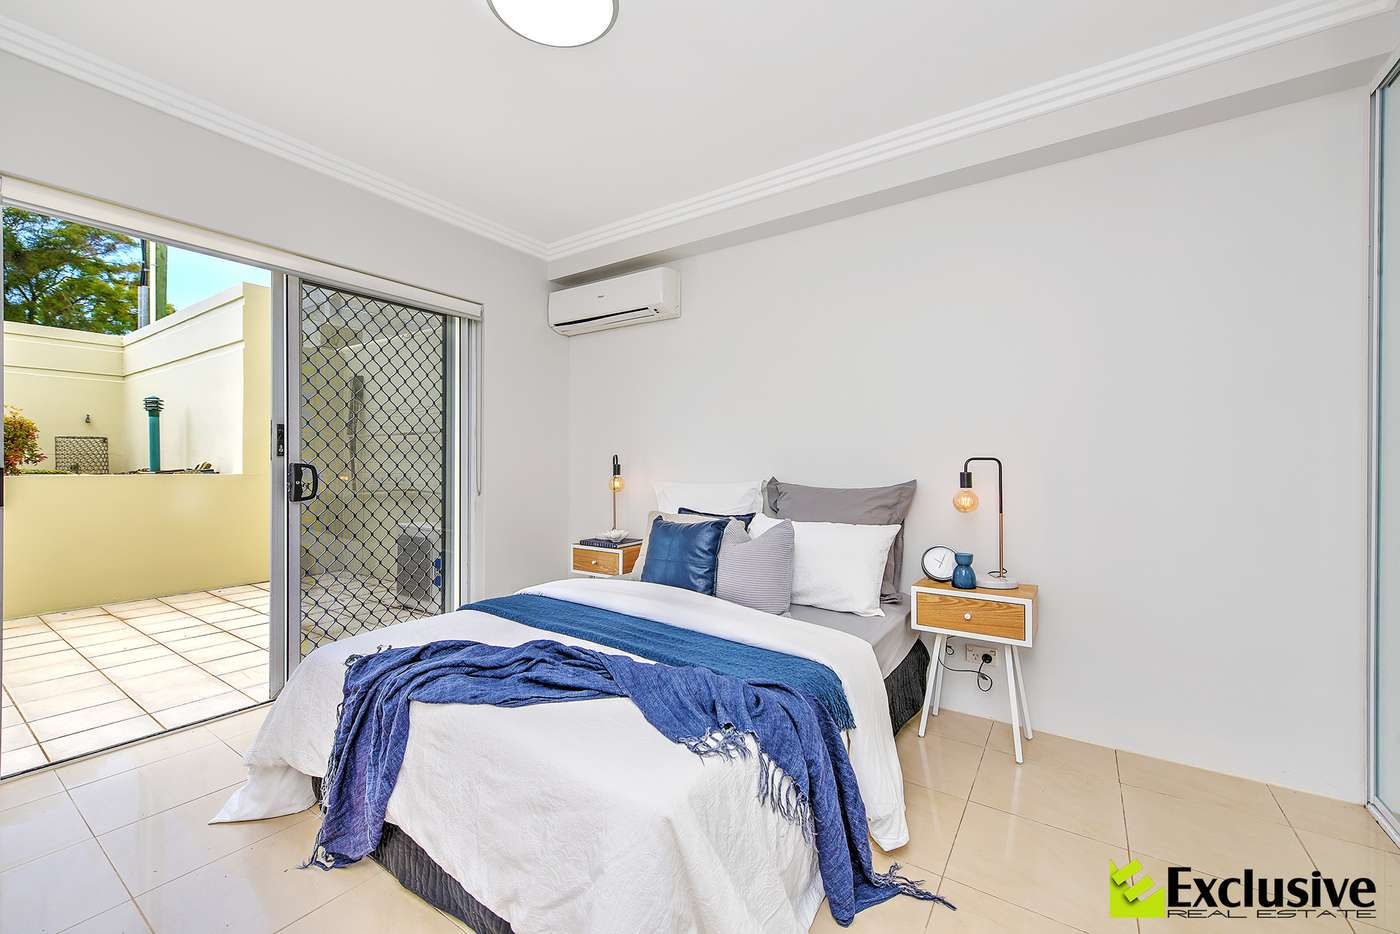 Fifth view of Homely apartment listing, 4/40 Hilly Street, Mortlake NSW 2137